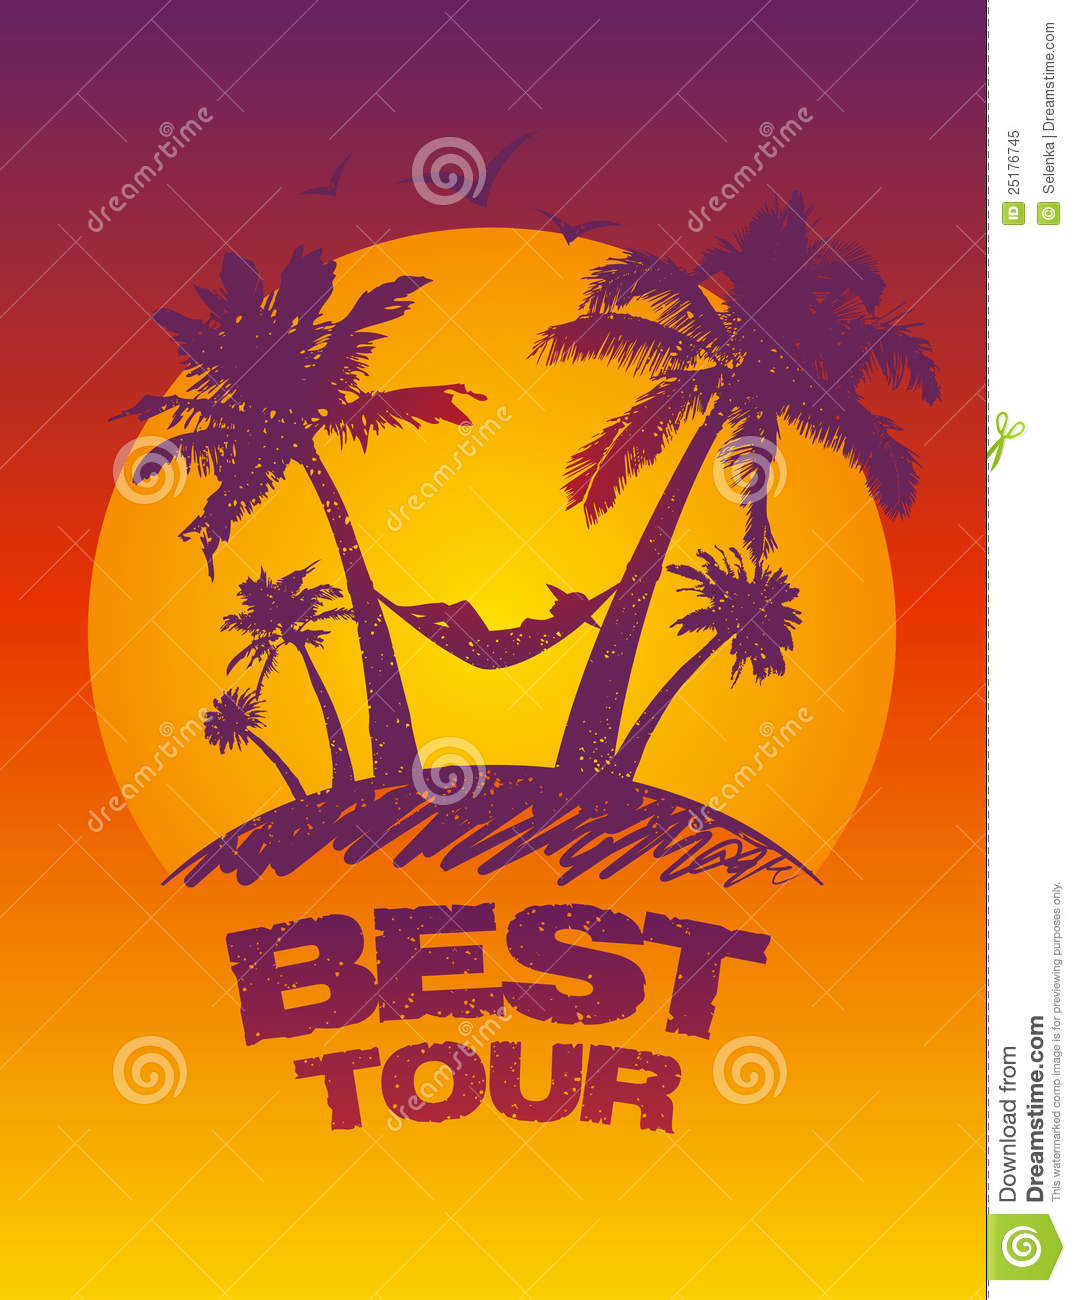 best tour design template royalty free stock photo